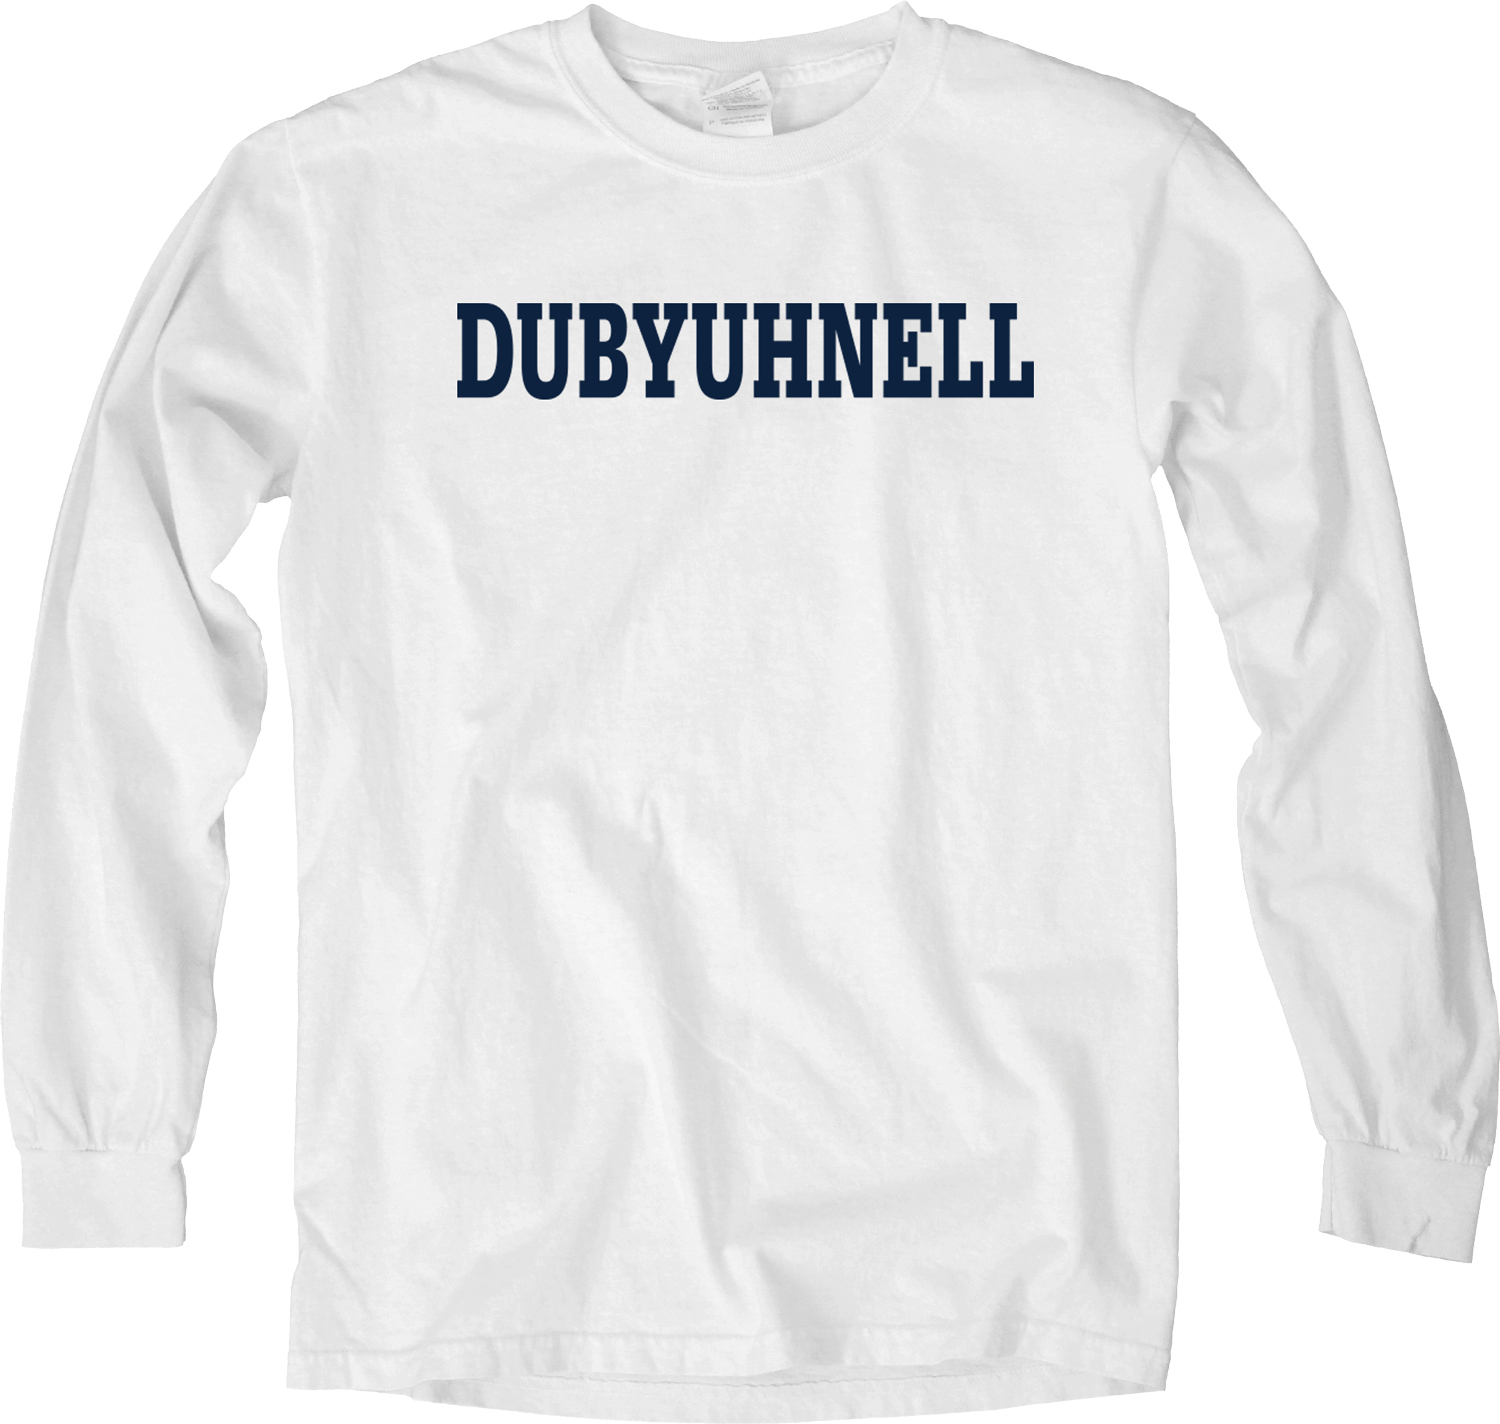 "Image For Blue 84 ""Dubyuhnell"" Long Sleeve Tee"